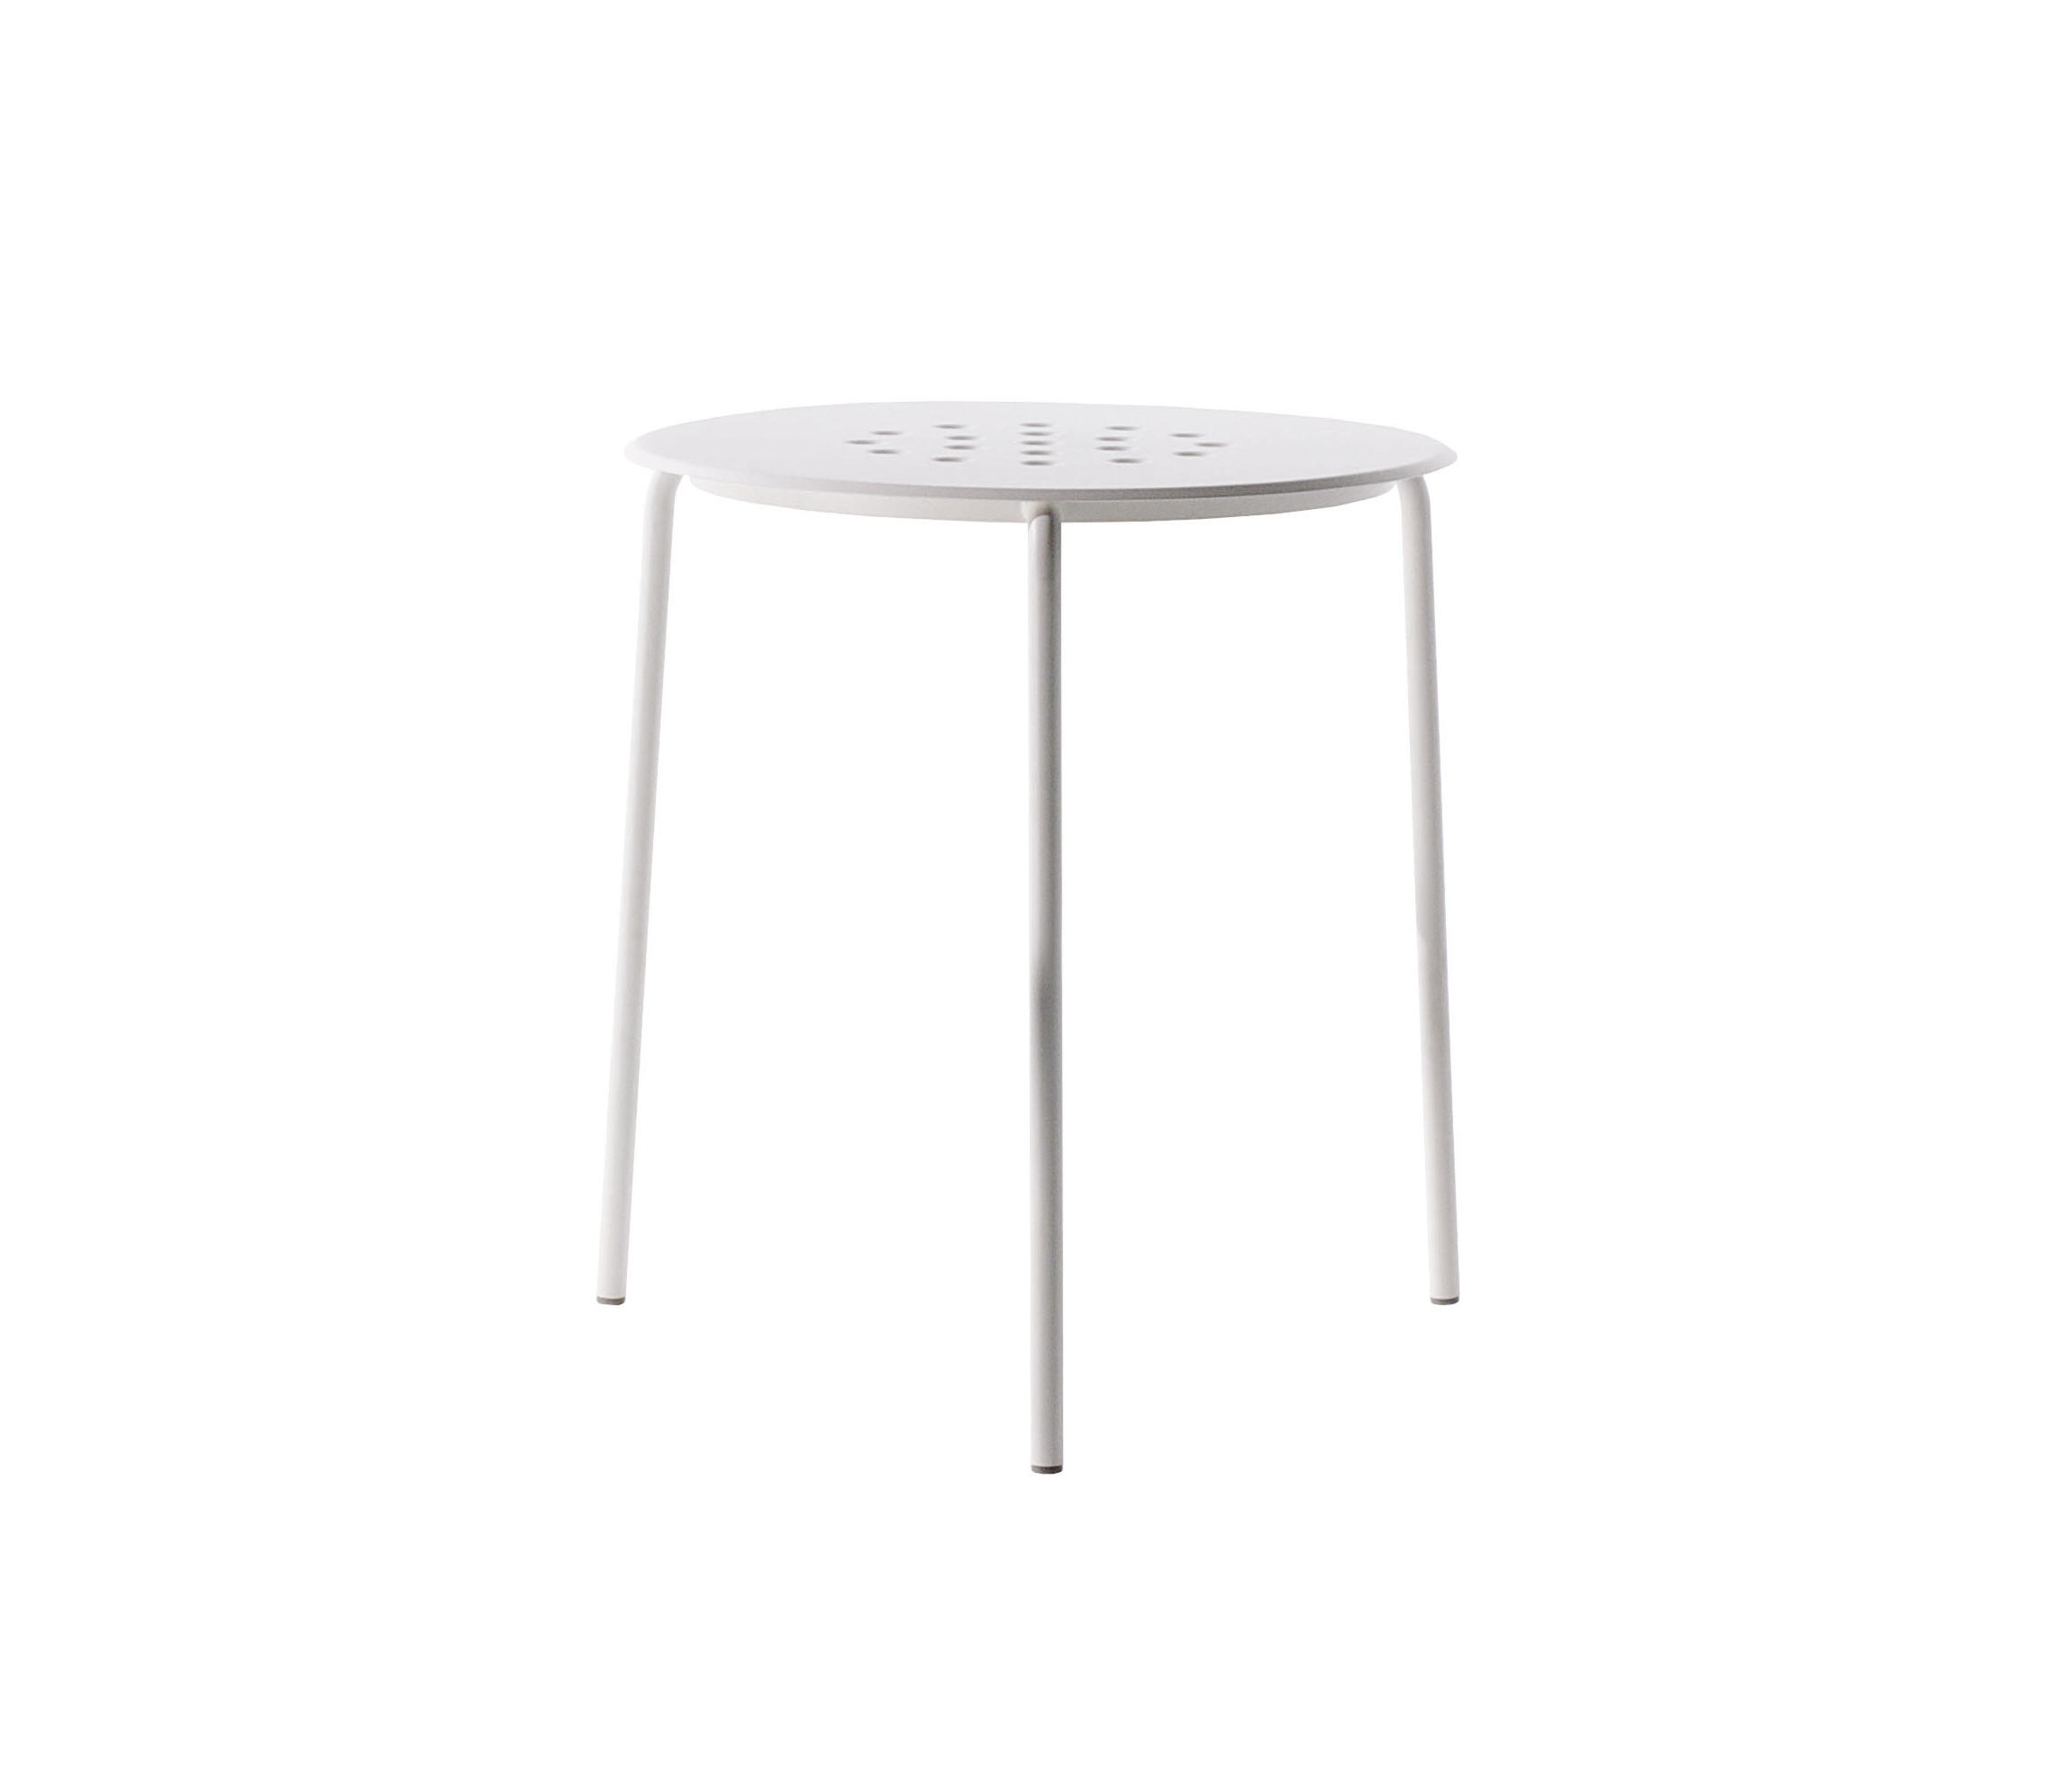 OPEN TABLE Bistro Tables From Alias Architonic - Oen table